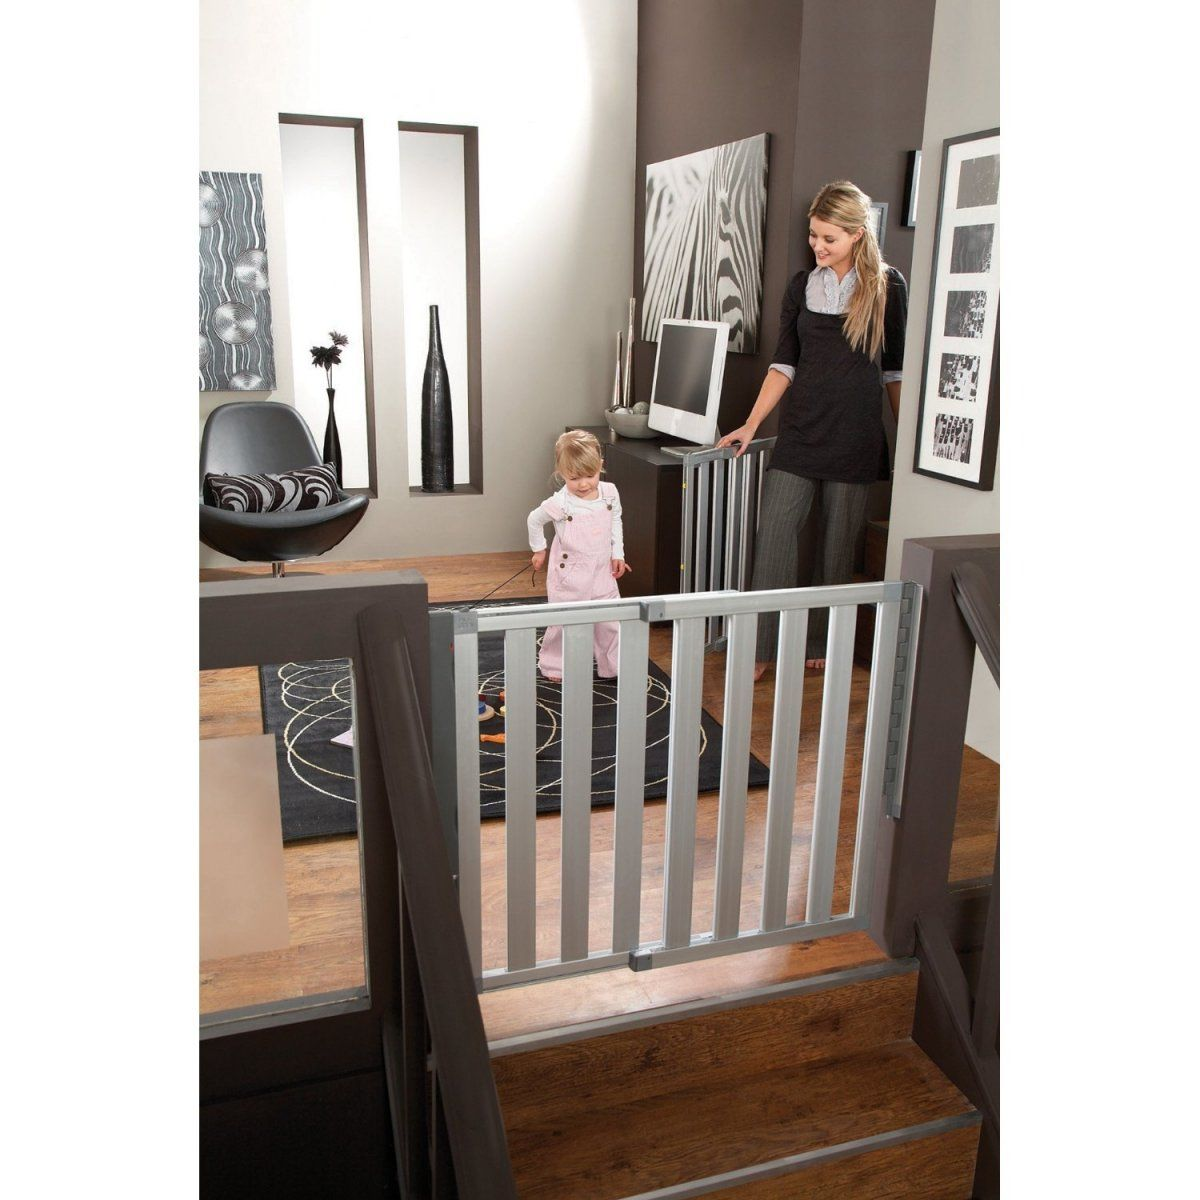 stunning gray baby safety gate for stairs design ideas with  - stunning gray baby safety gate for stairs design ideas with floating shapedsafety gate style that